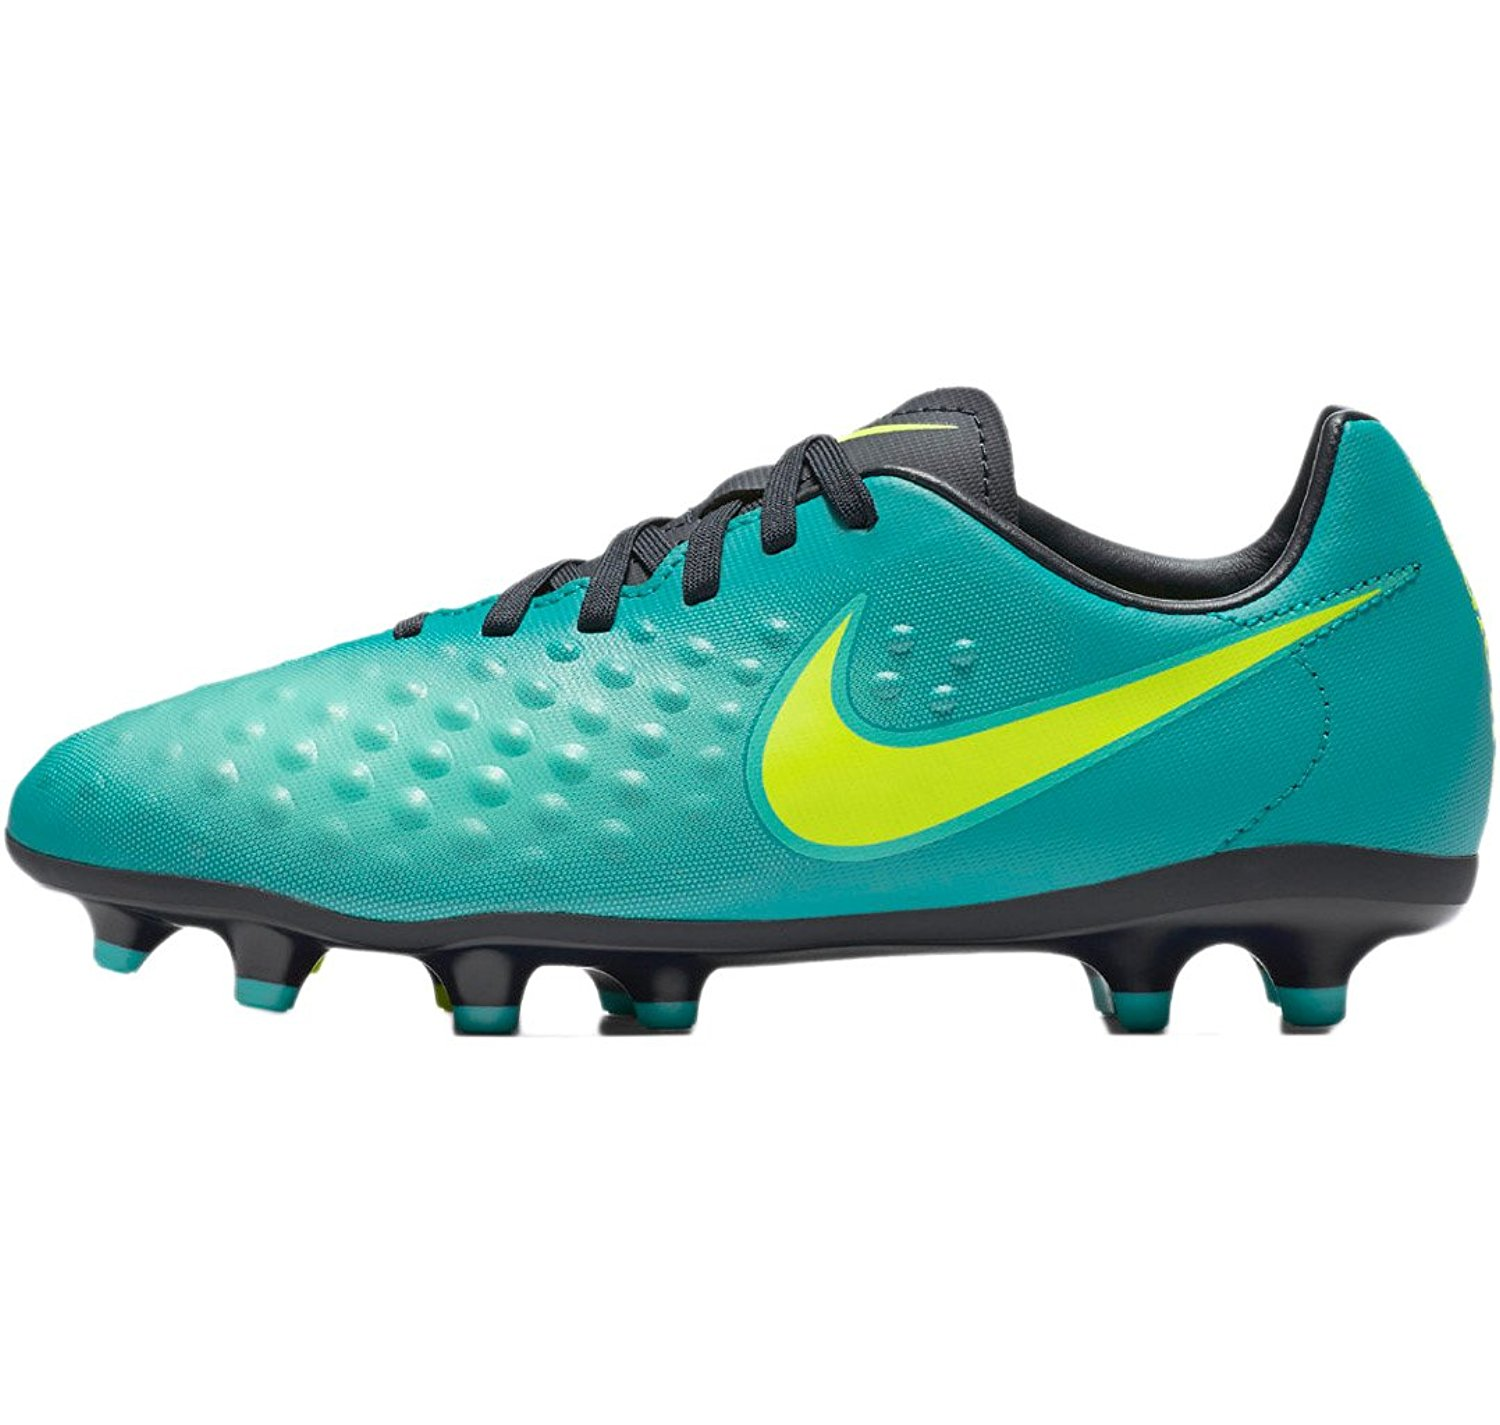 0873bbb88c29 Get Quotations · Nike Kids  Magista Opus II FG Soccer Cleat (Rio Teal)